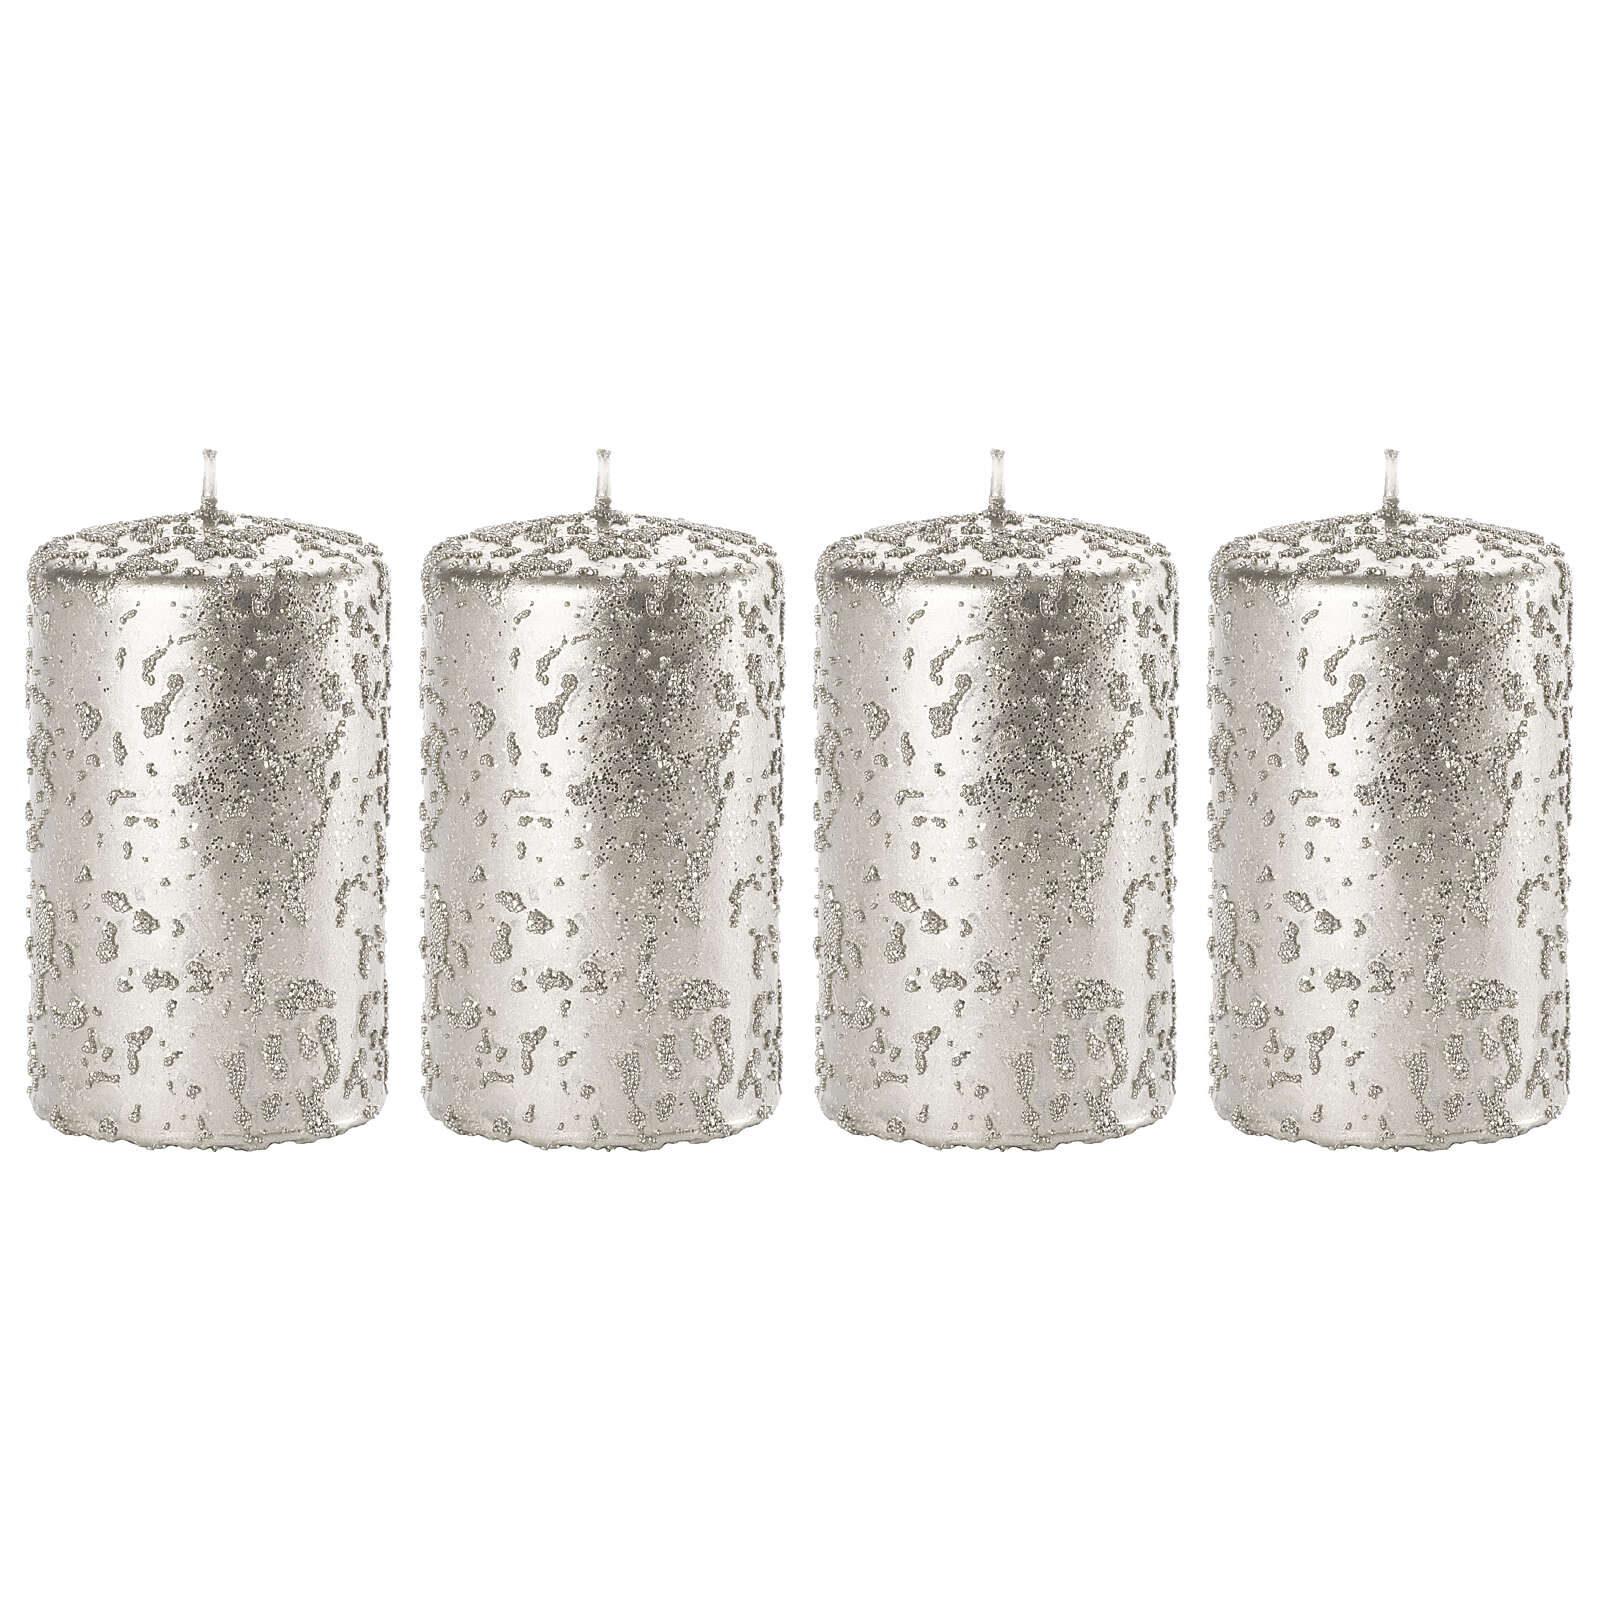 Christmas candles, set of 4, glittery silver, 150x70 mm 3